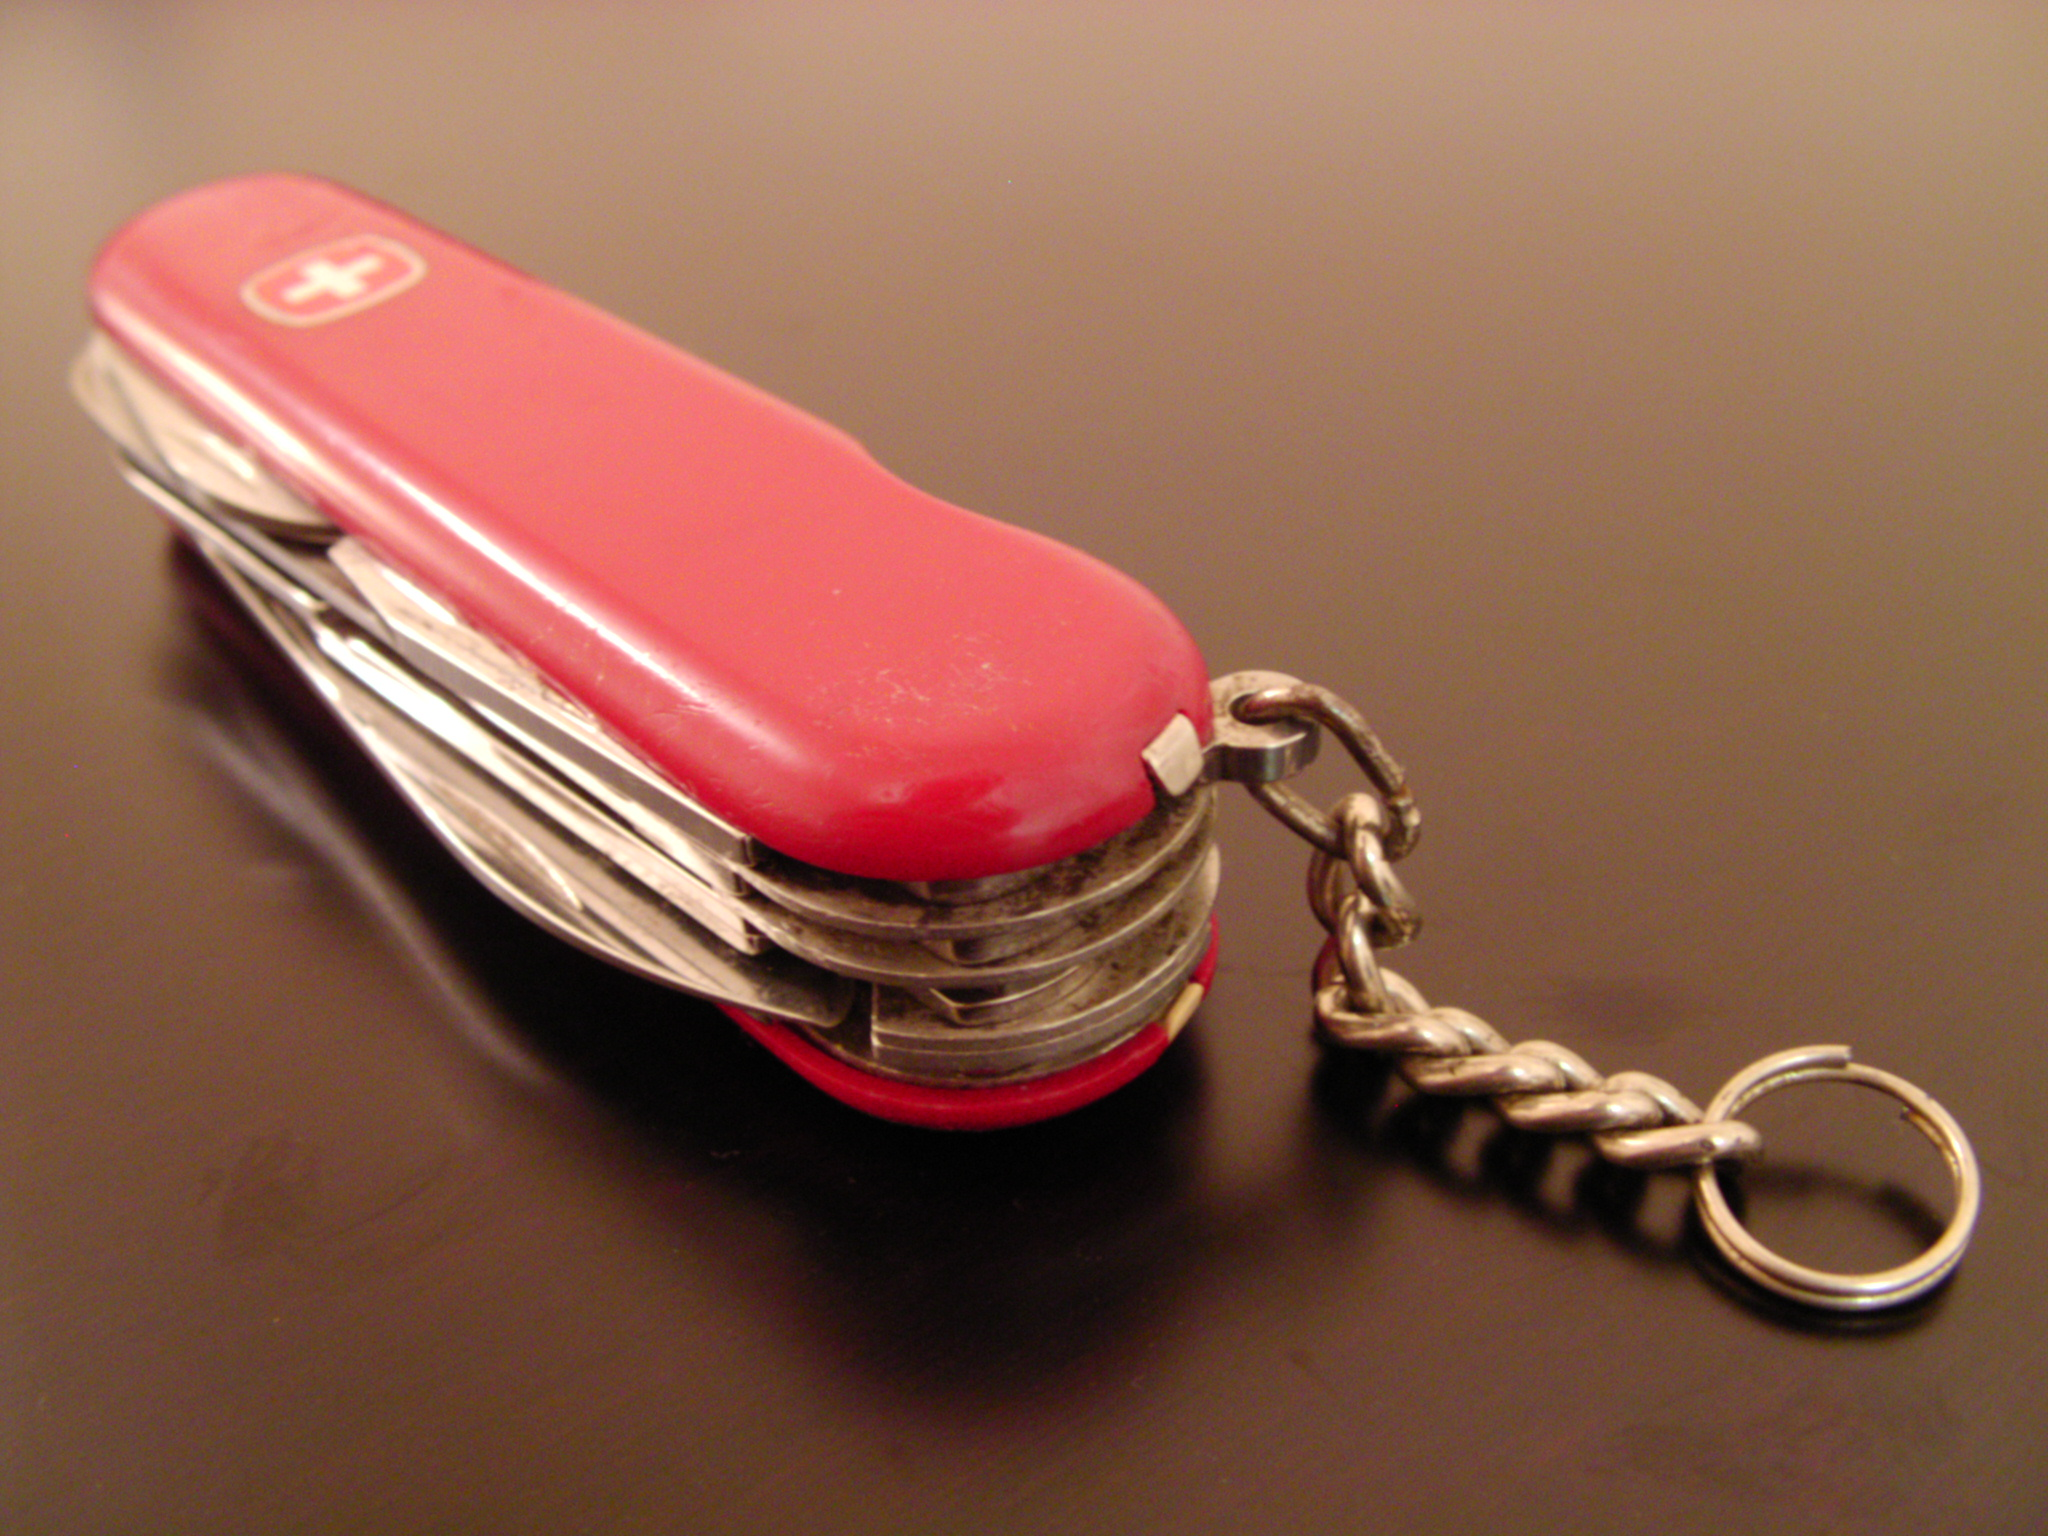 Swiss Army Knife (Wenger)